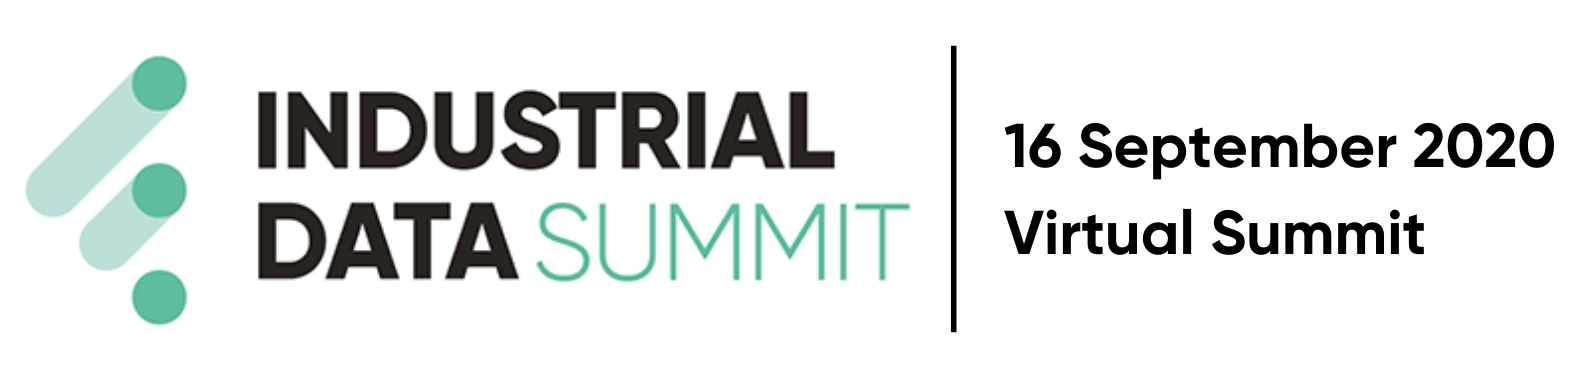 Industrial Data Summit logo